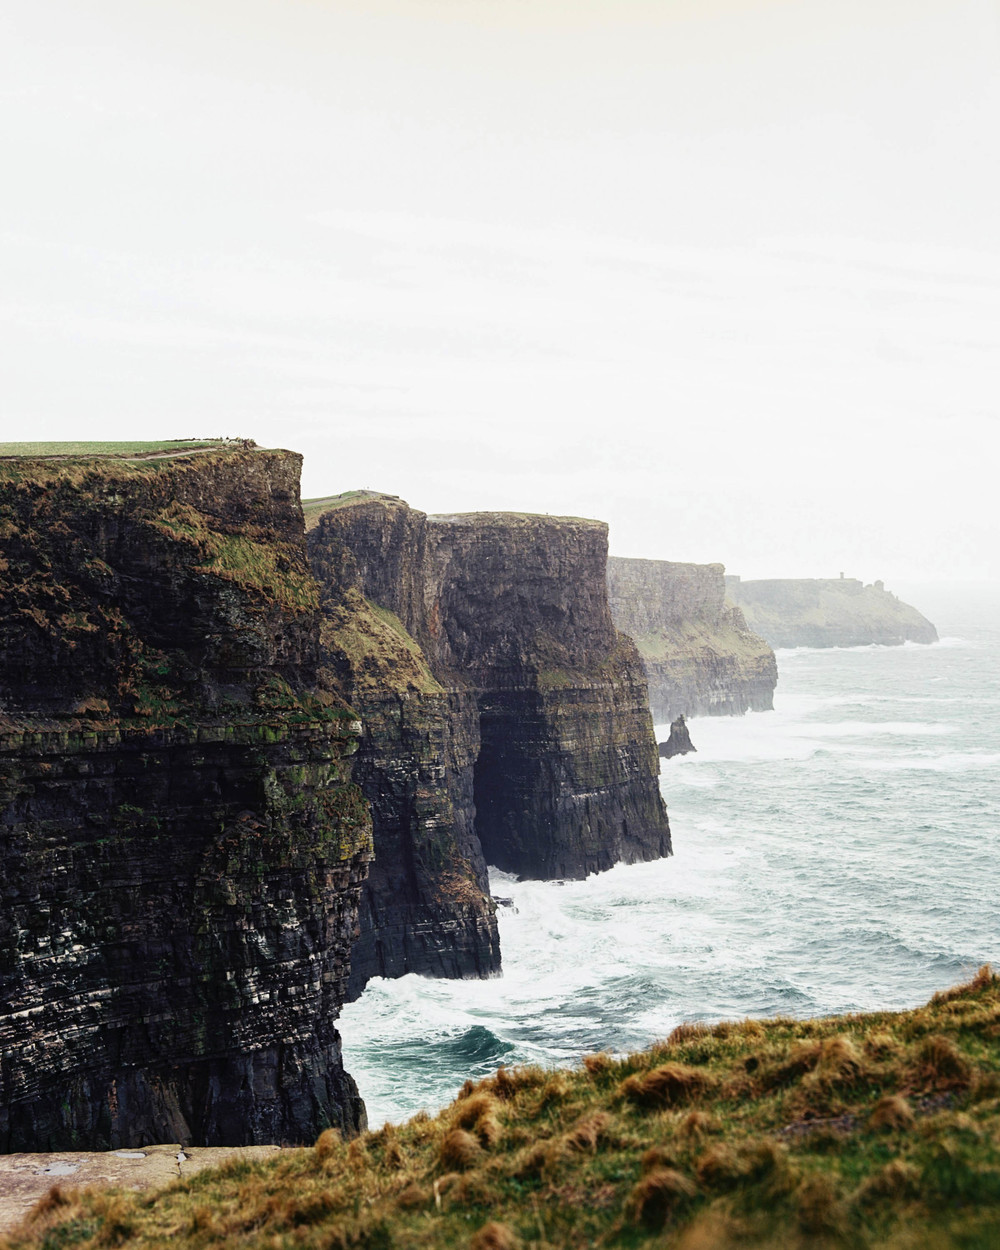 Alyssa Joy Photography - Cliffs of Moher Ireland travel photographer